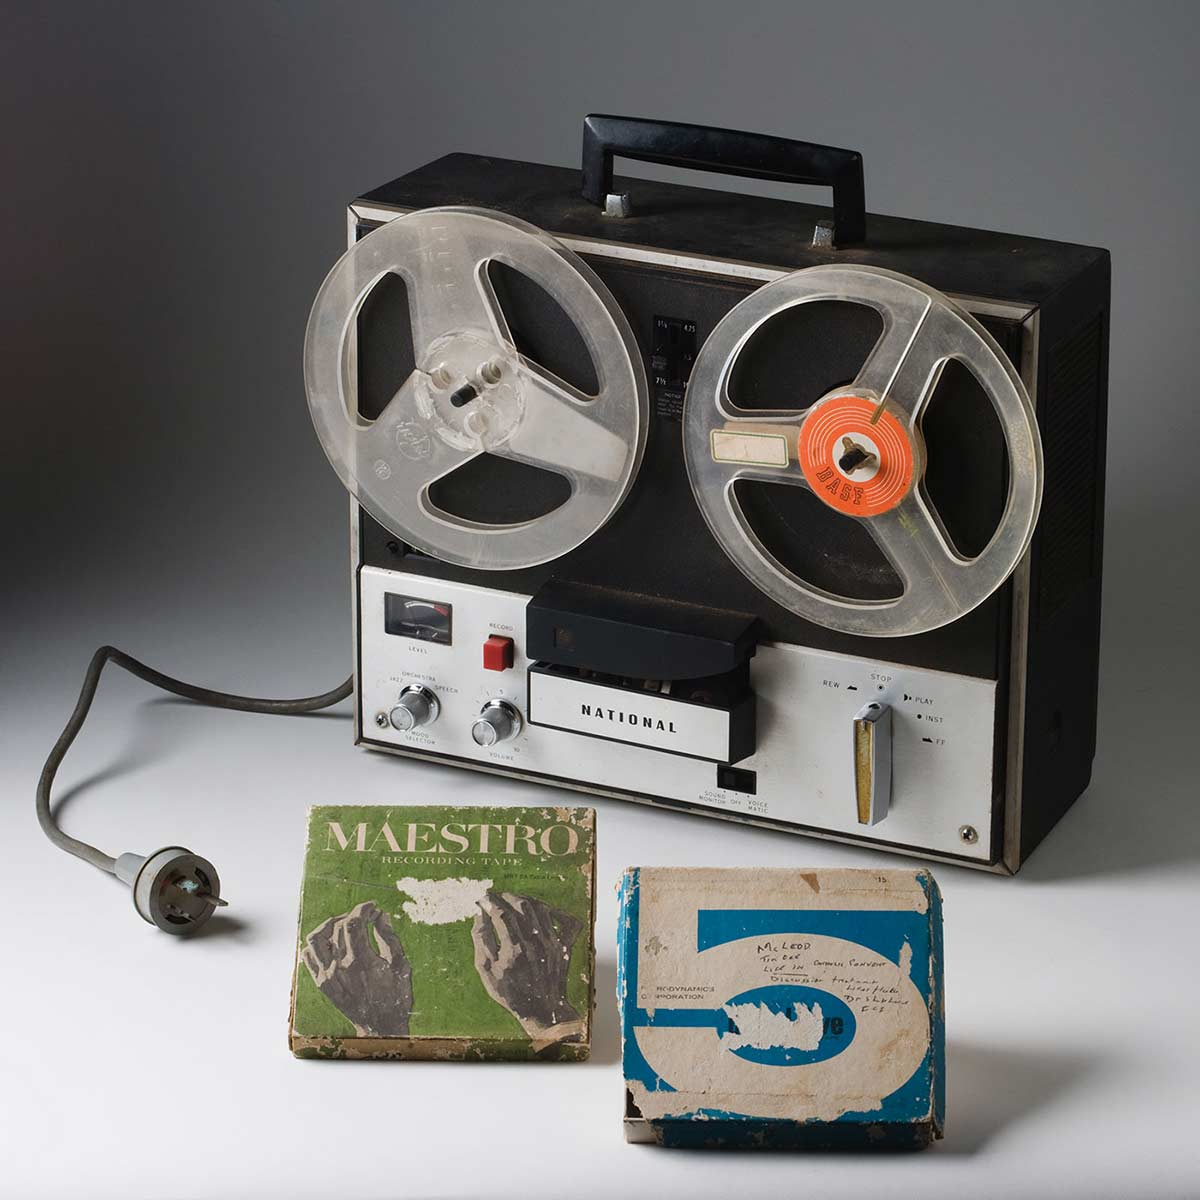 A 'NATIONAL' reel to reel tape recorder made from black plastic and silver coloured metal, with a power cable, a handle at the top, and a removable black plastic cover. - click to view larger image